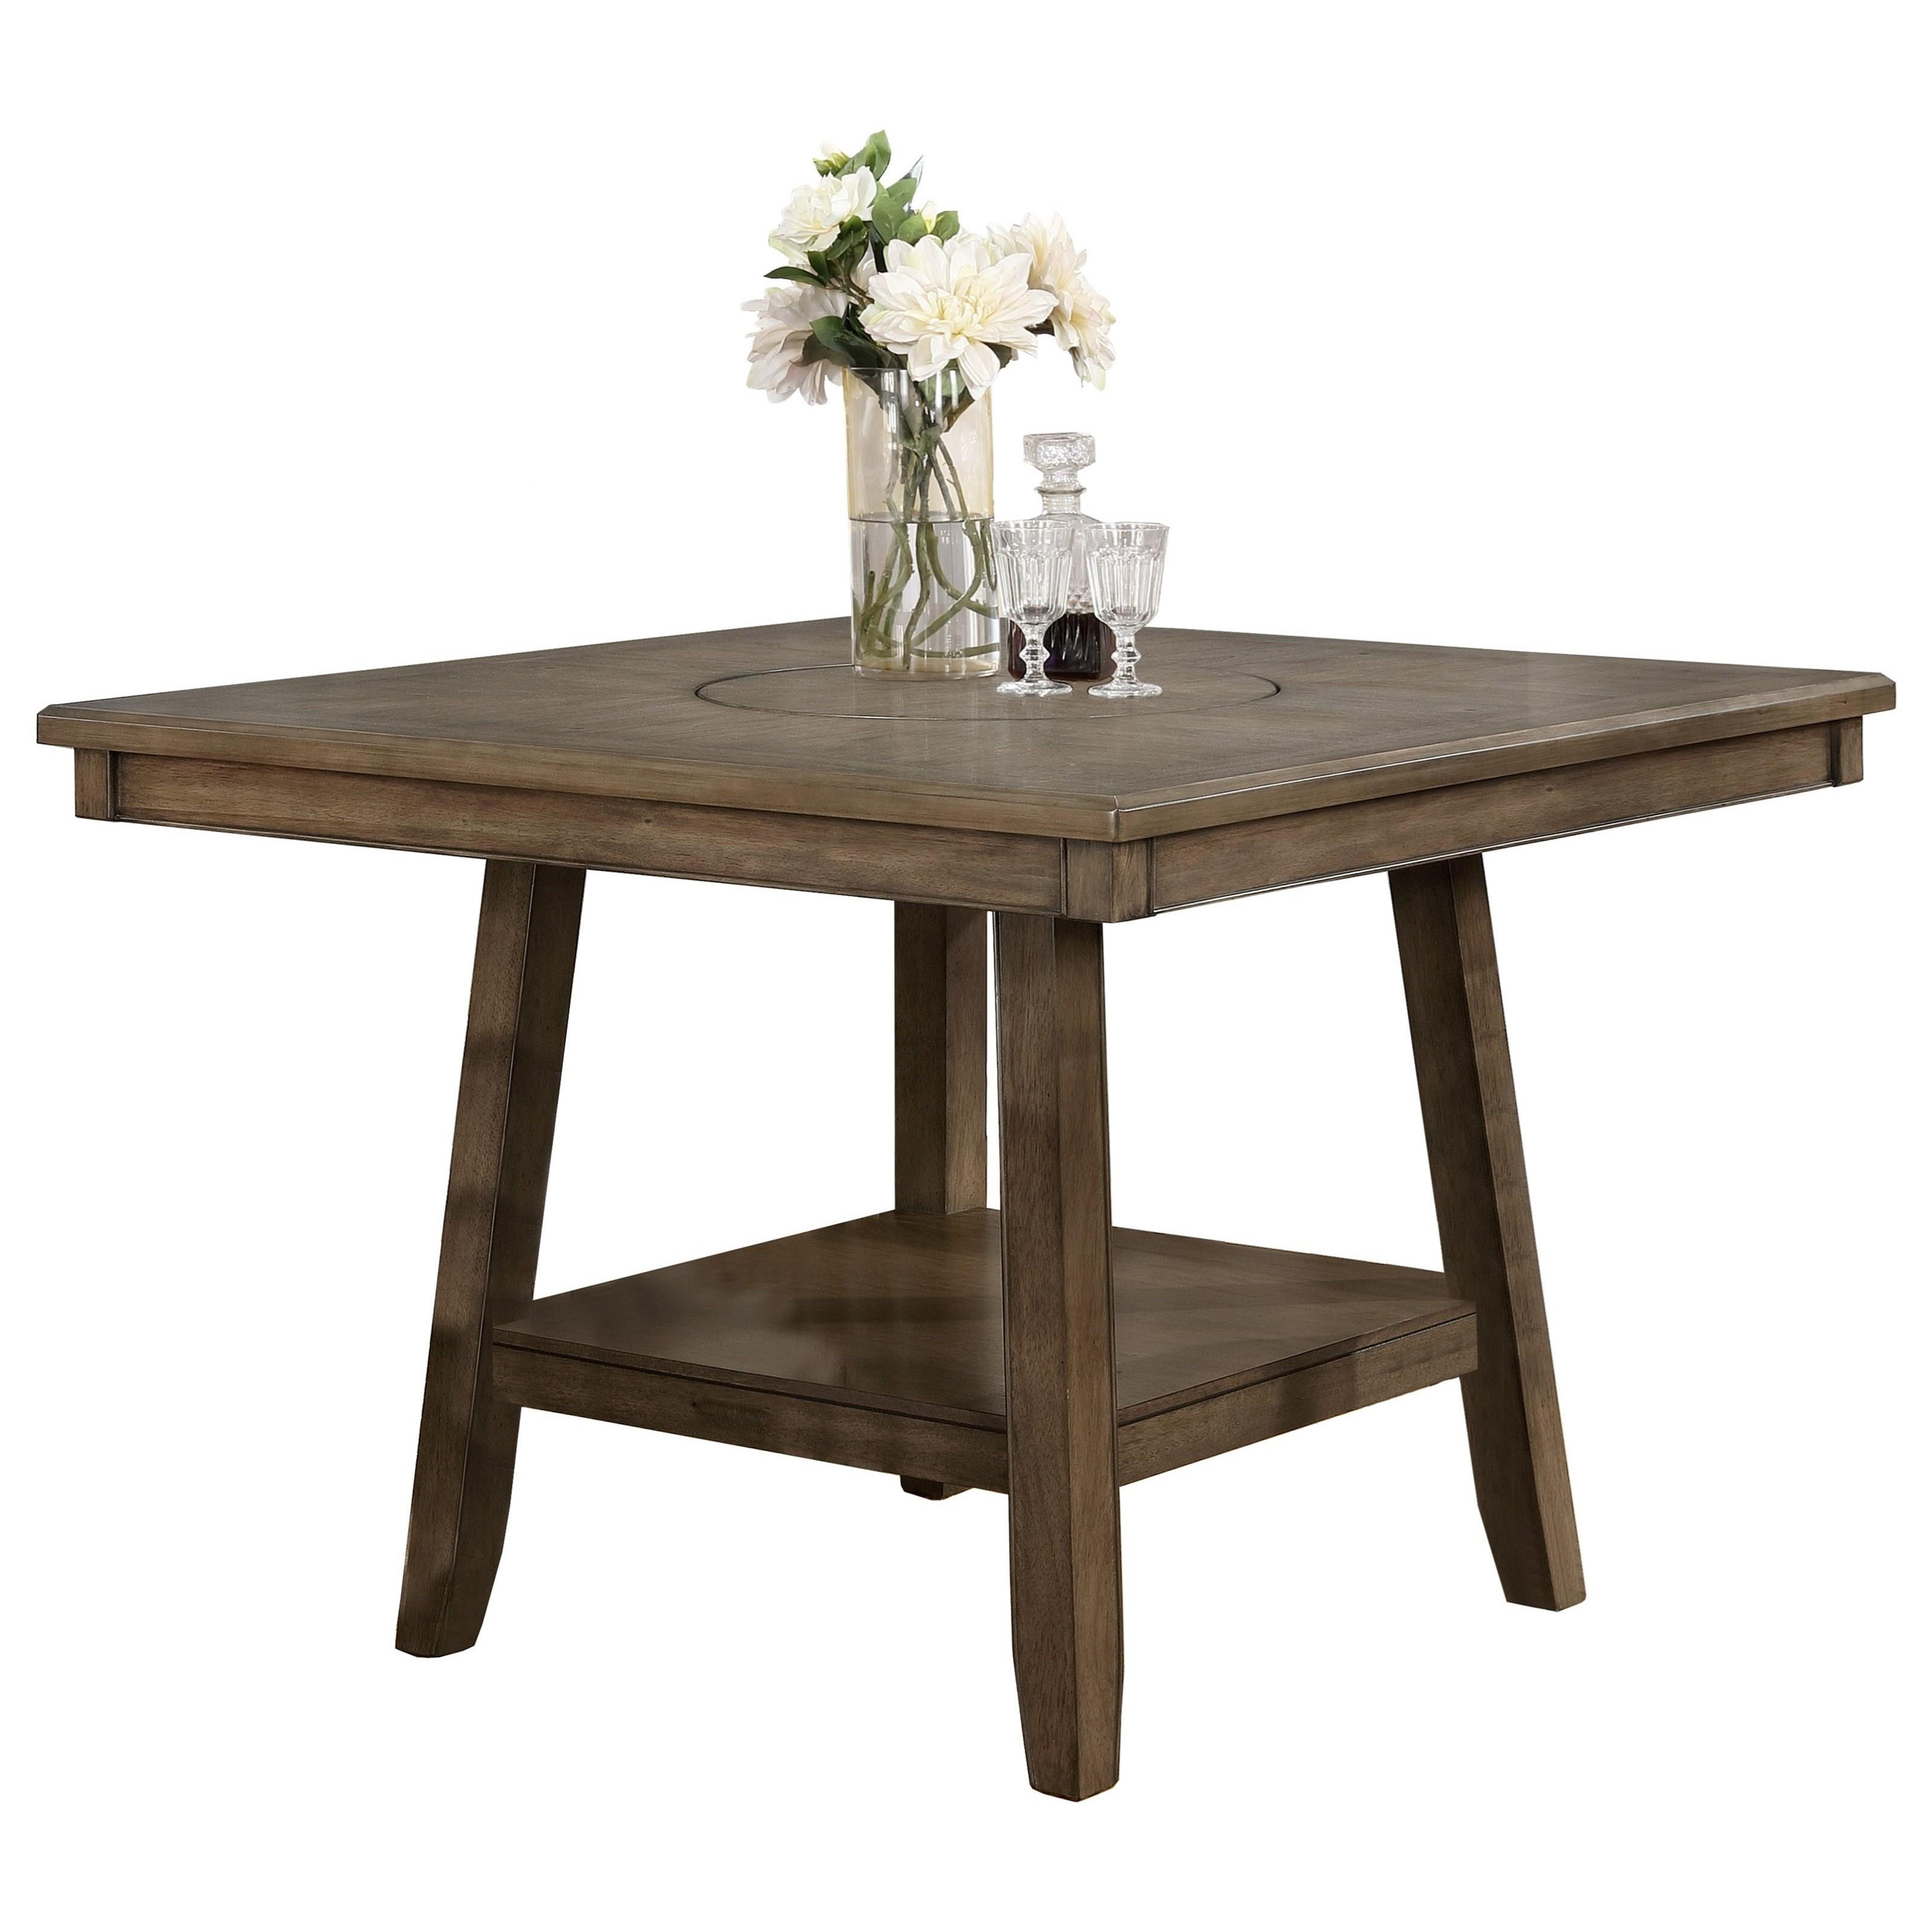 Crown mark manning 2731t 4848 casual counter height table for Markup table